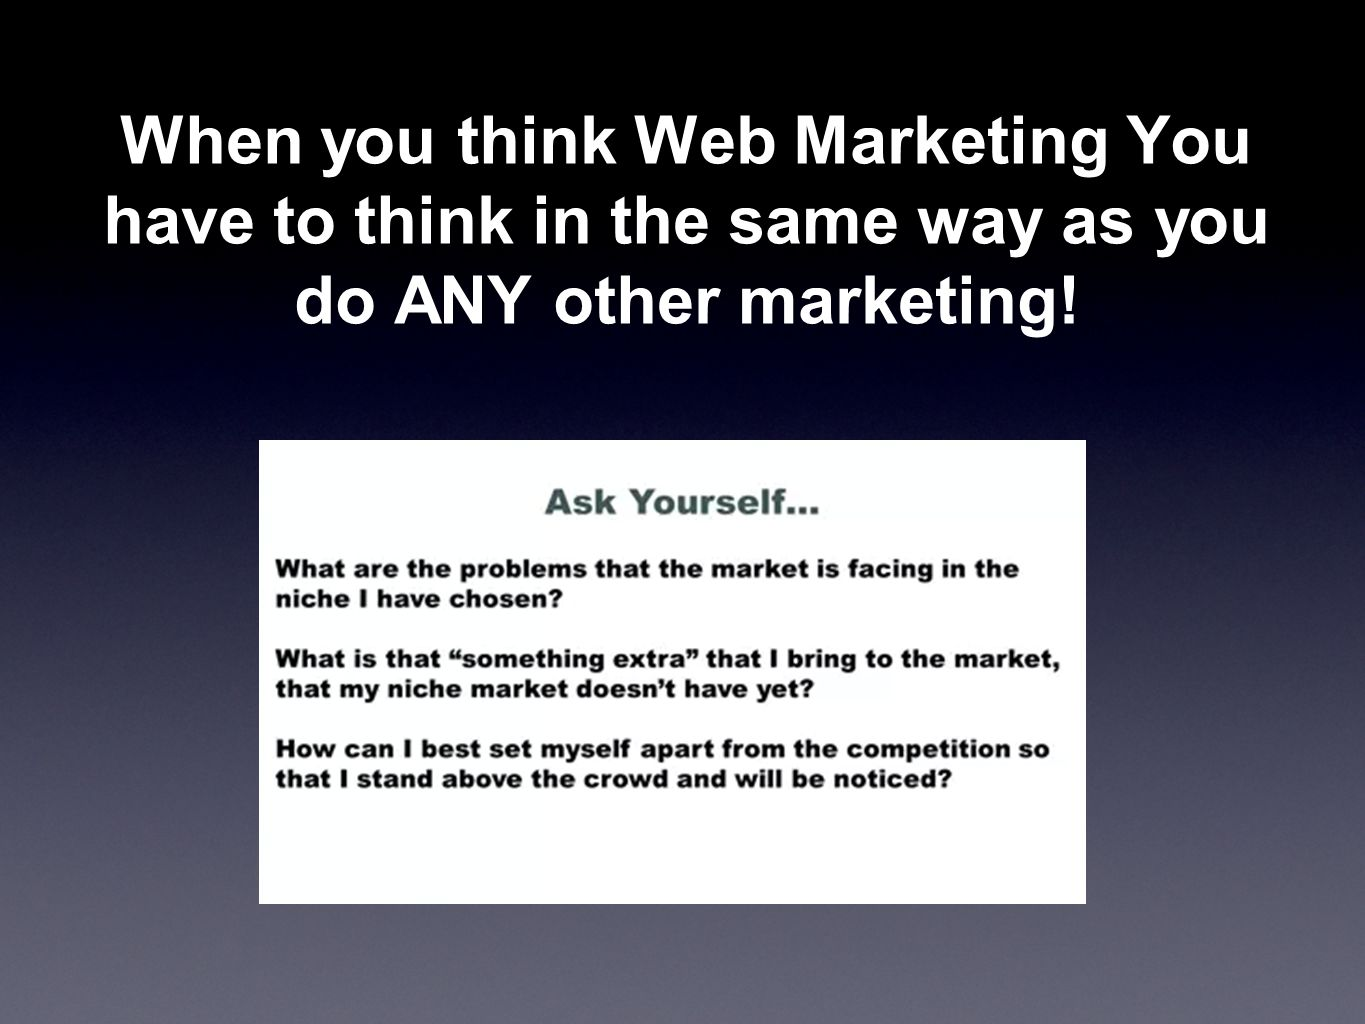 When you think Web Marketing You have to think in the same way as you do ANY other marketing!